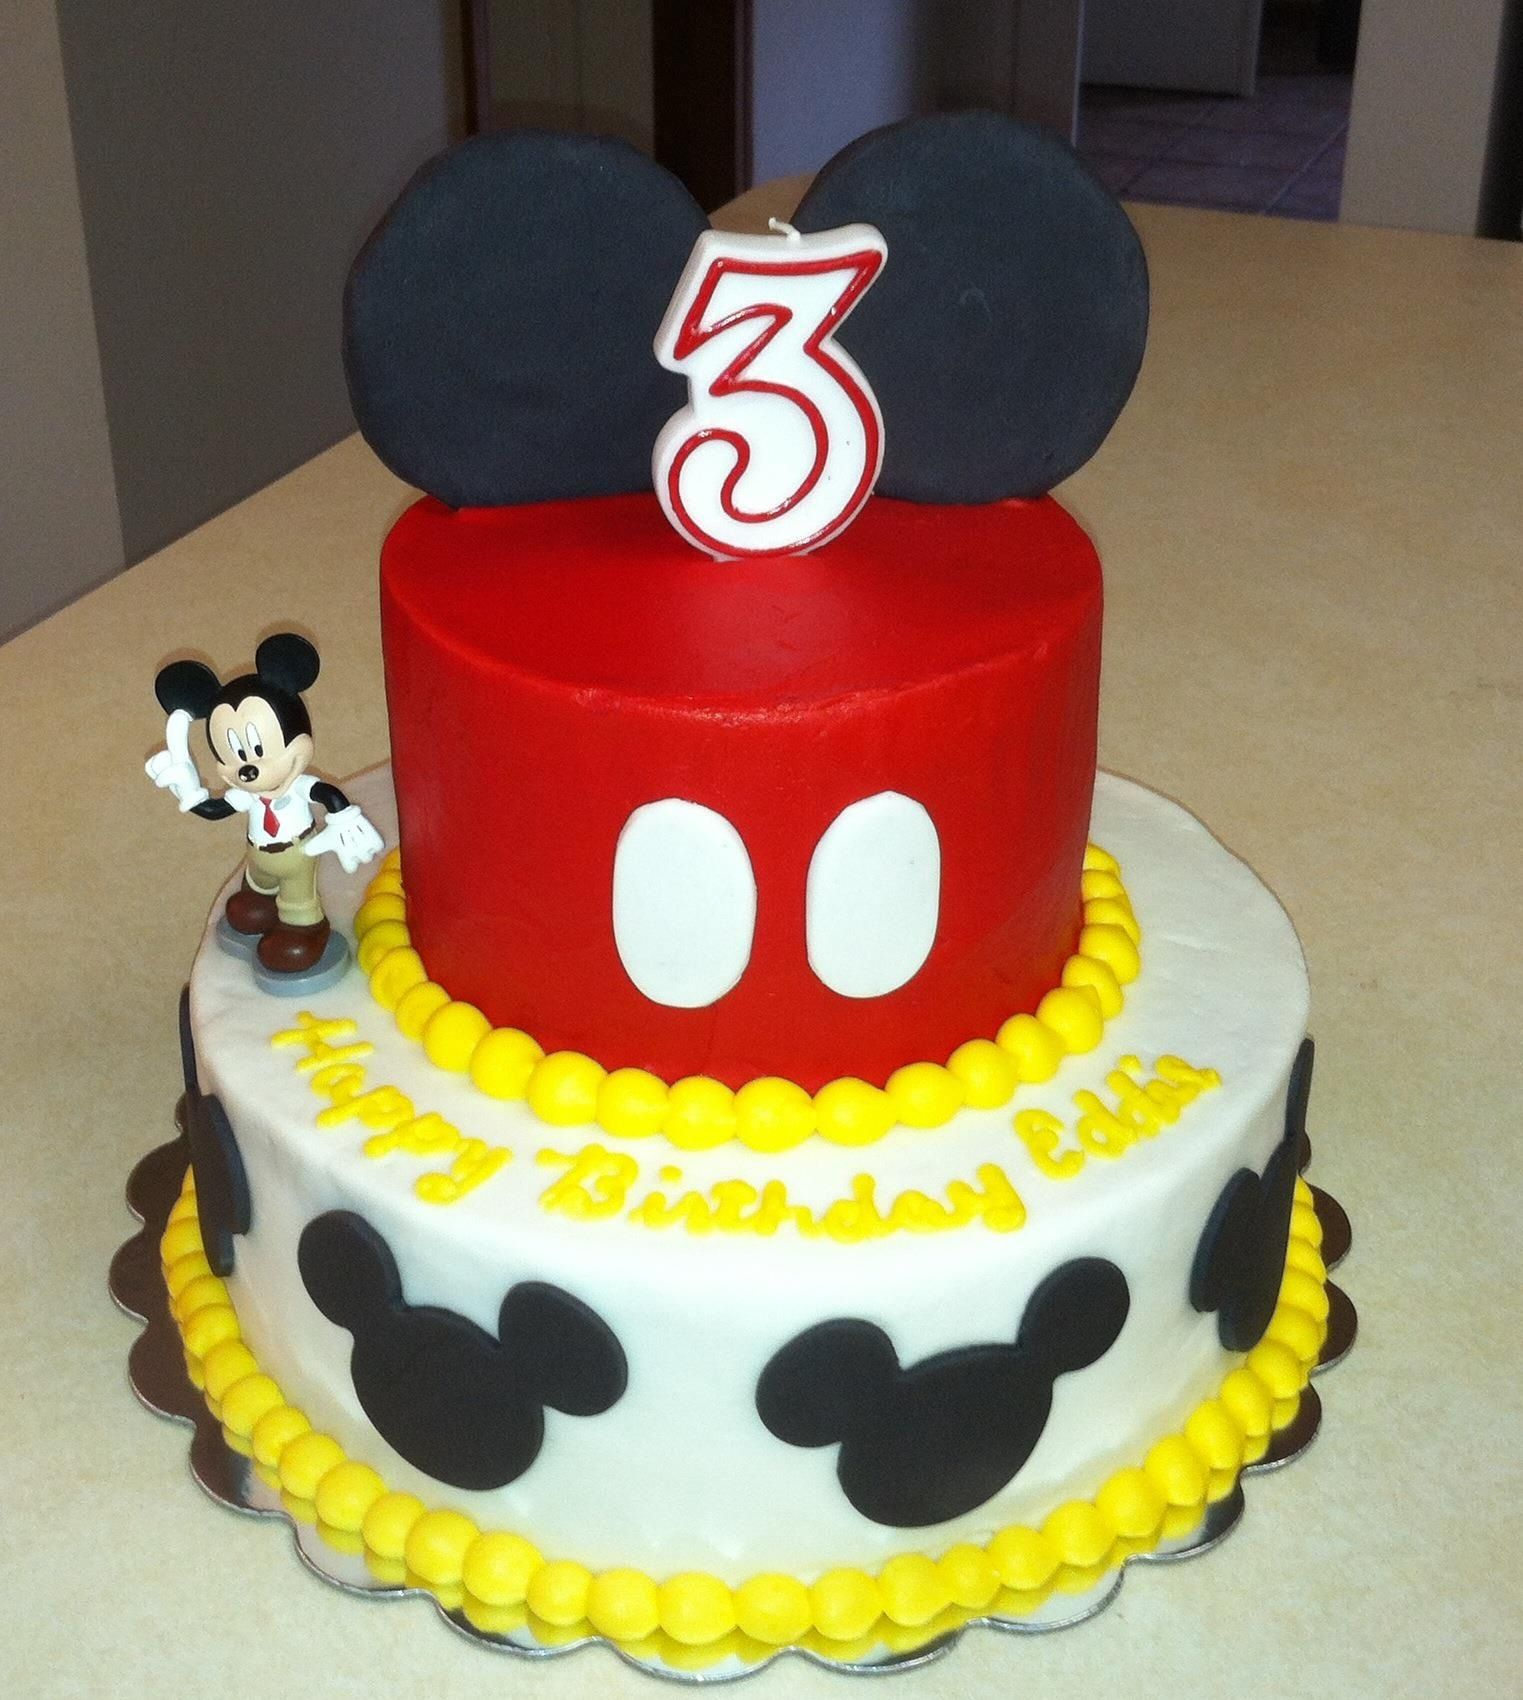 Mickey Mouse Cake Buttercream Cake With Fondant Accents Boy Birthday Cake Mickey Cakes Baby Boy Cakes